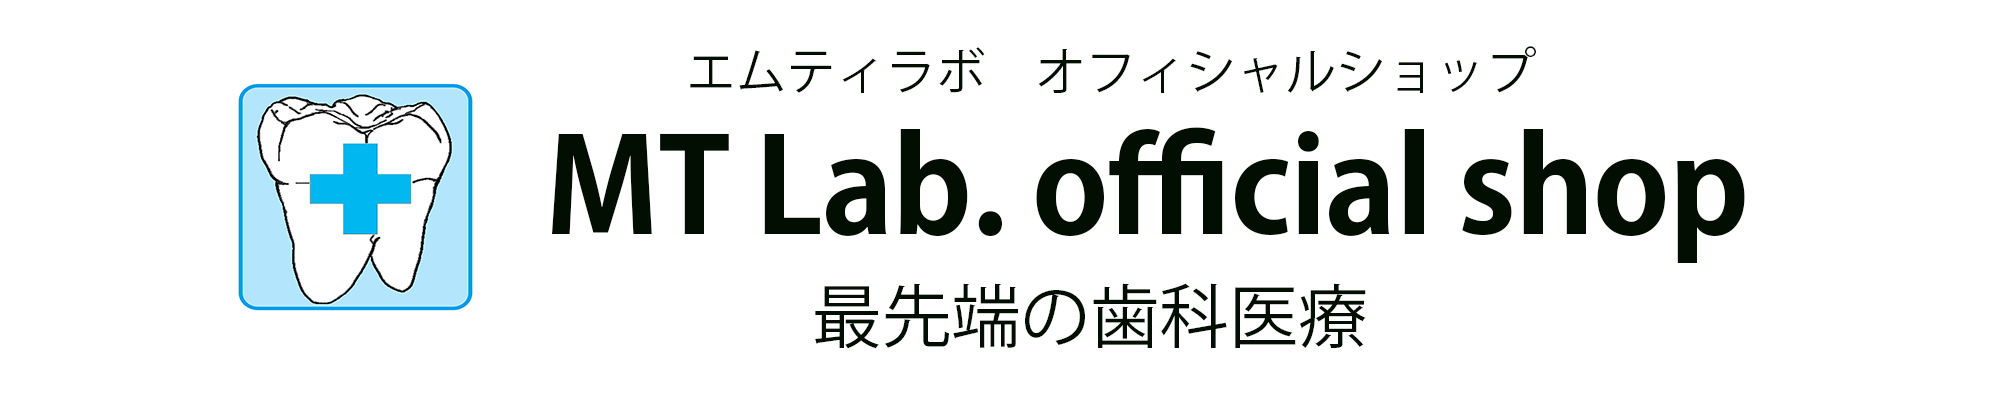 MT Lab. official shop